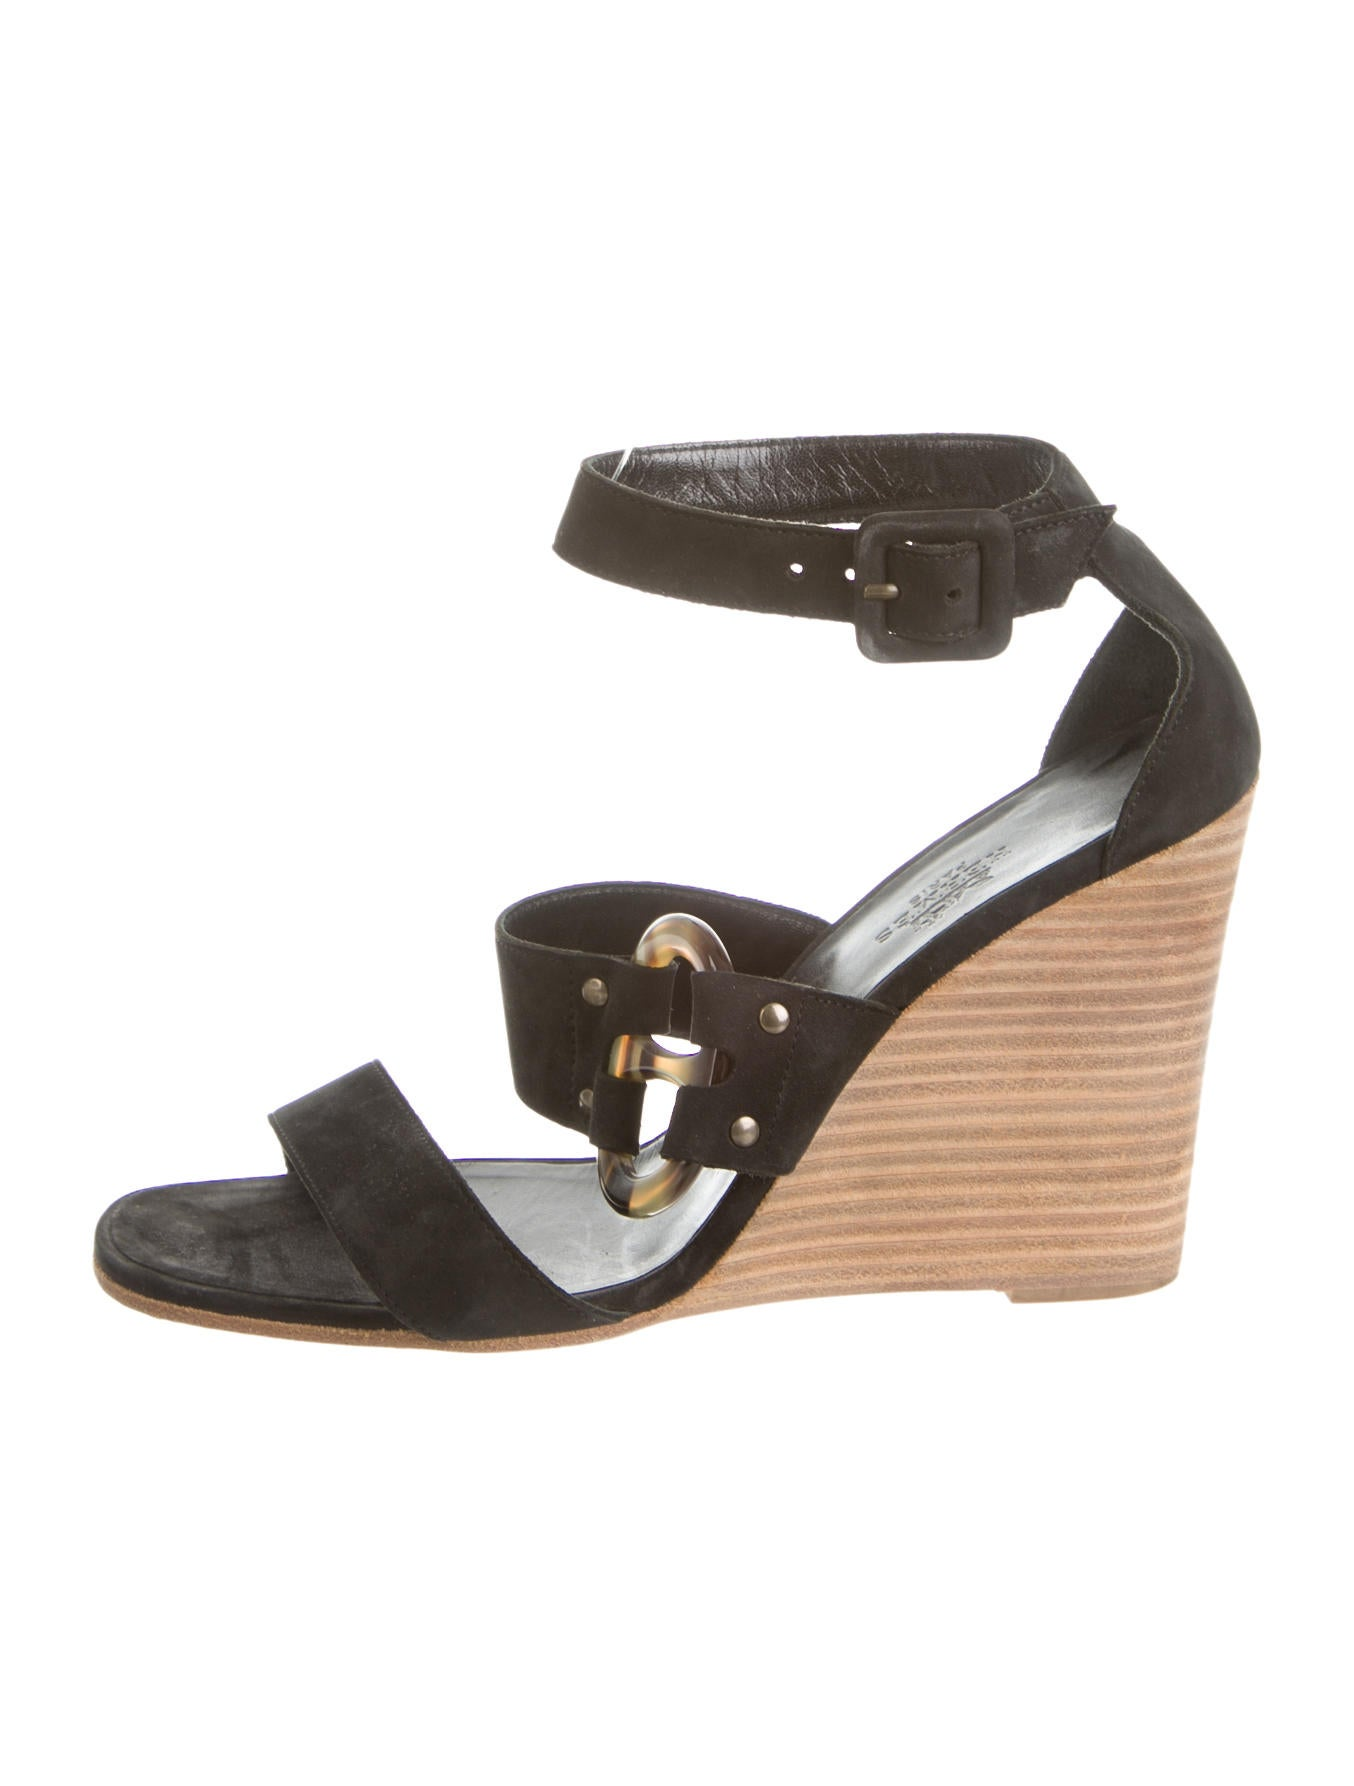 Brilliant Herms Lizard Slingback Sandals  Shoes  HER50937  The RealReal